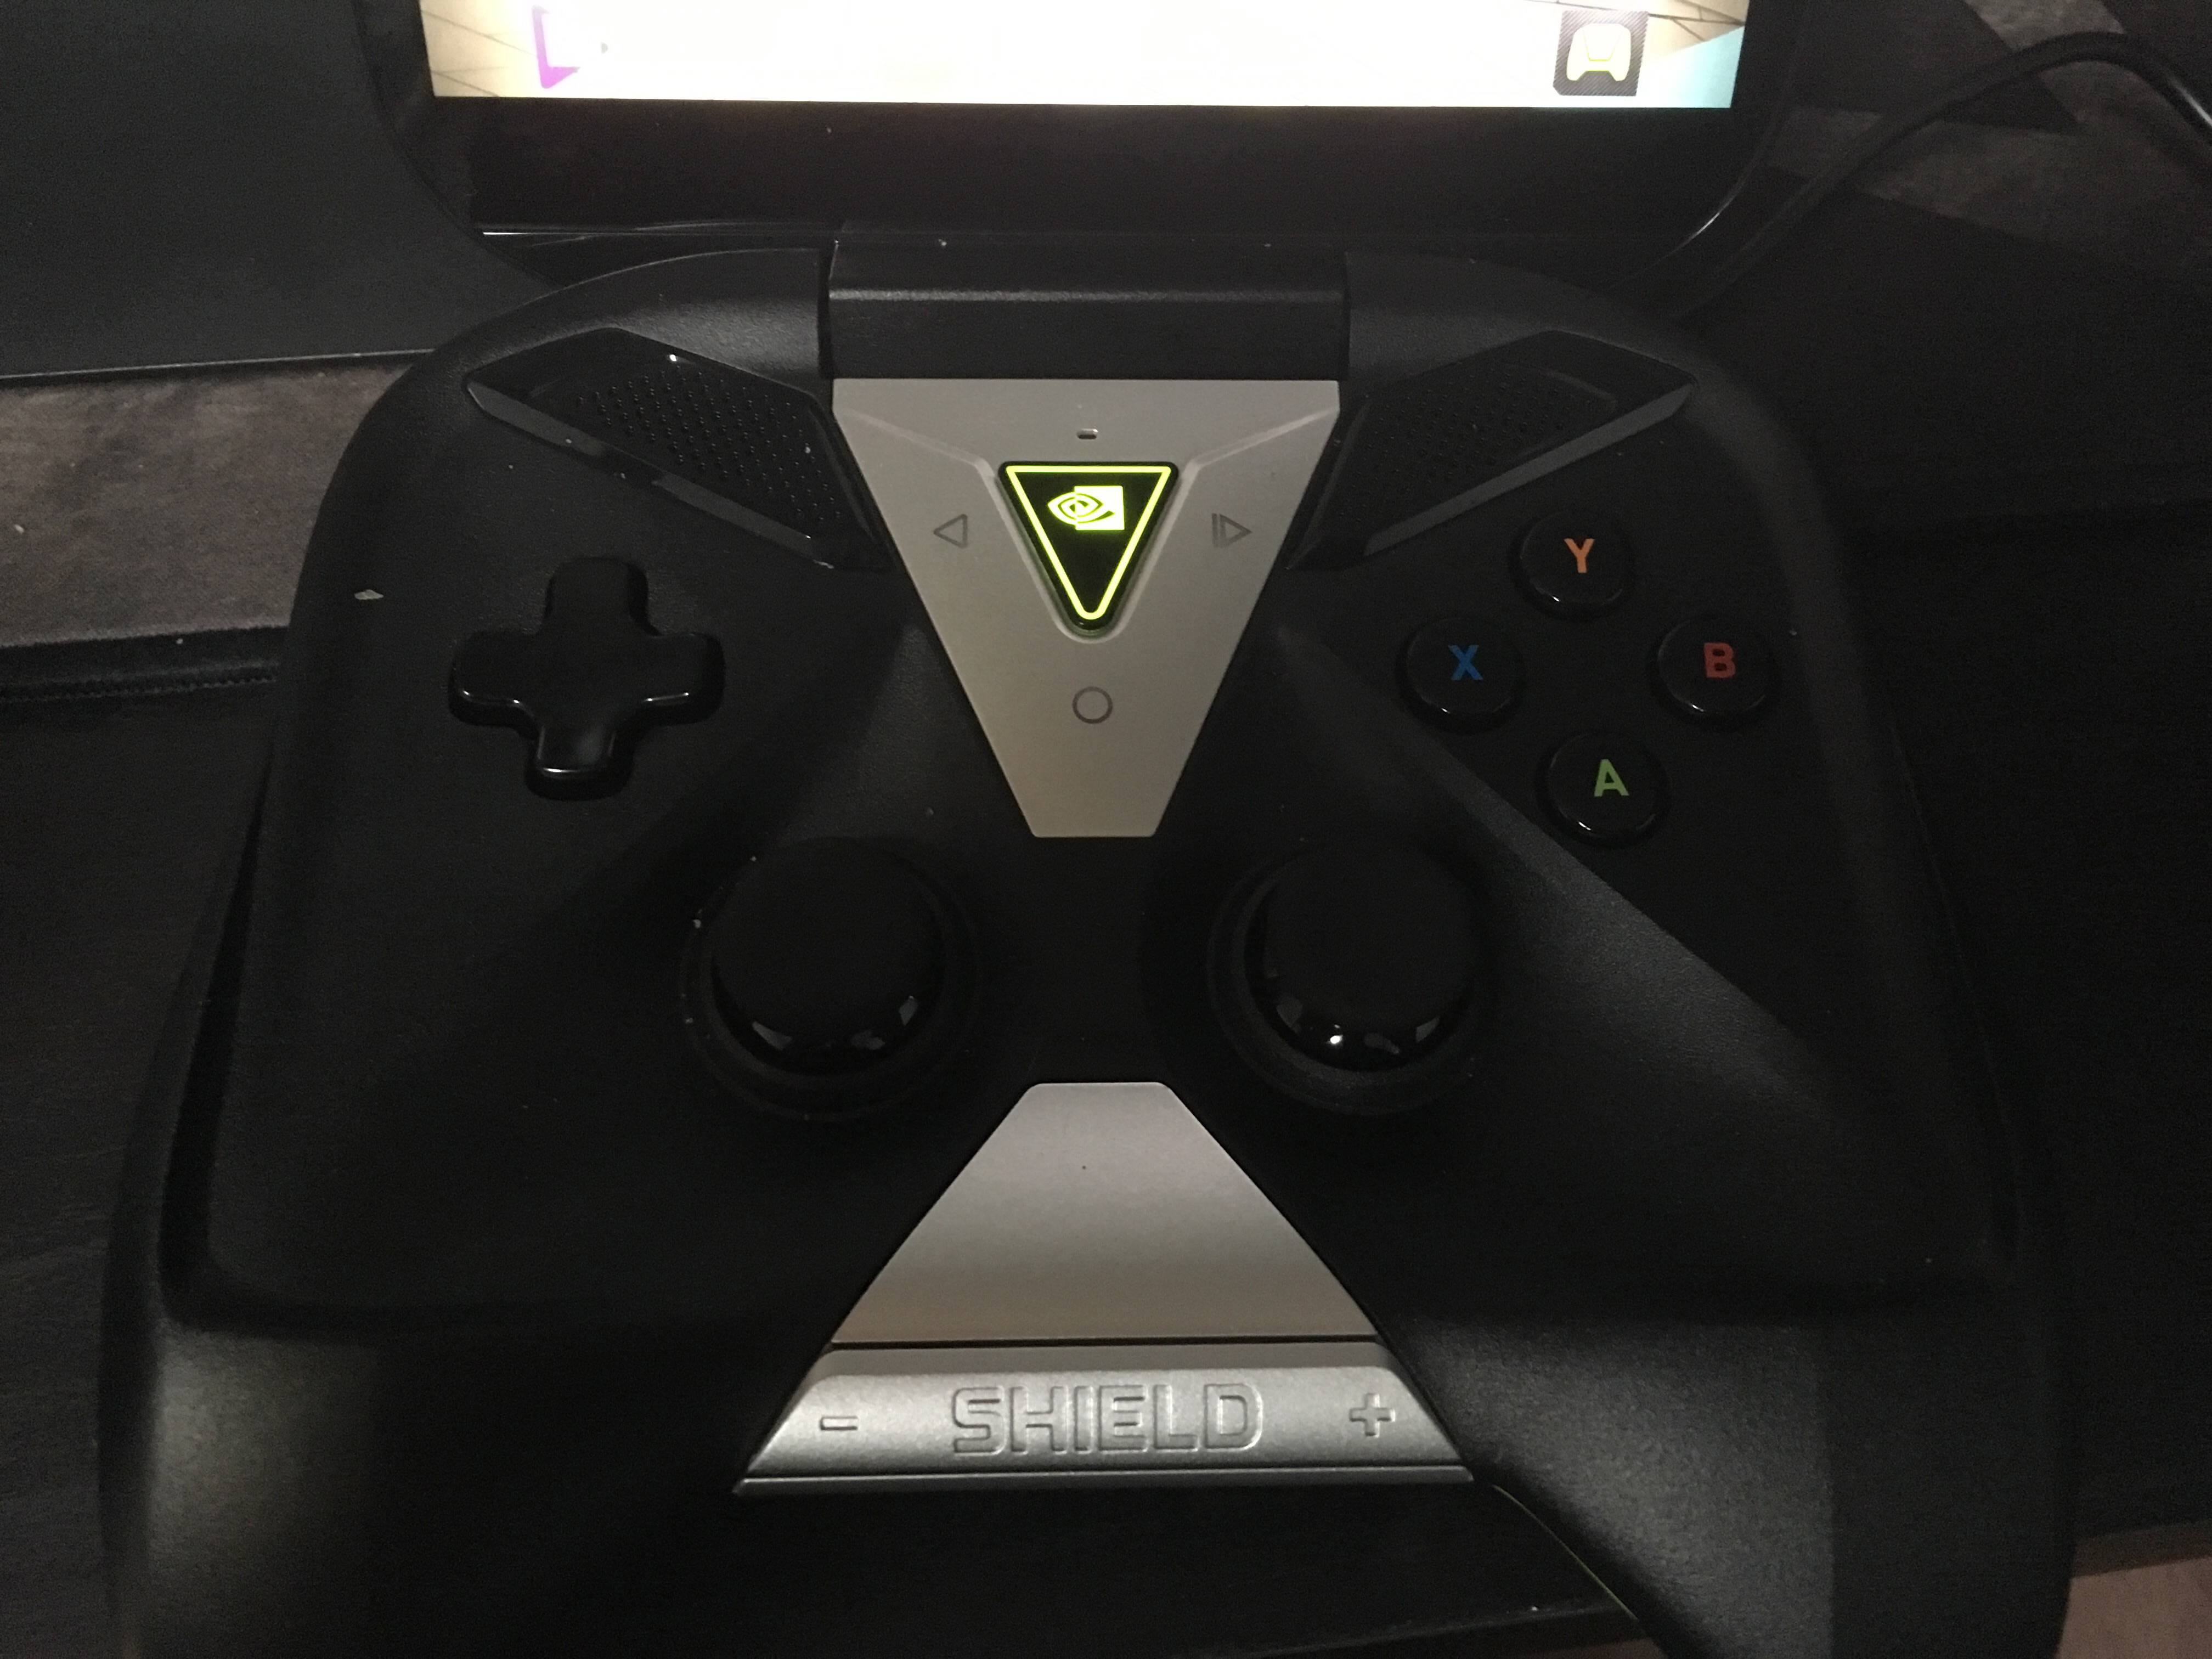 Unreleased NVIDIA Shield Portable 2 found at pawn shop in Canada